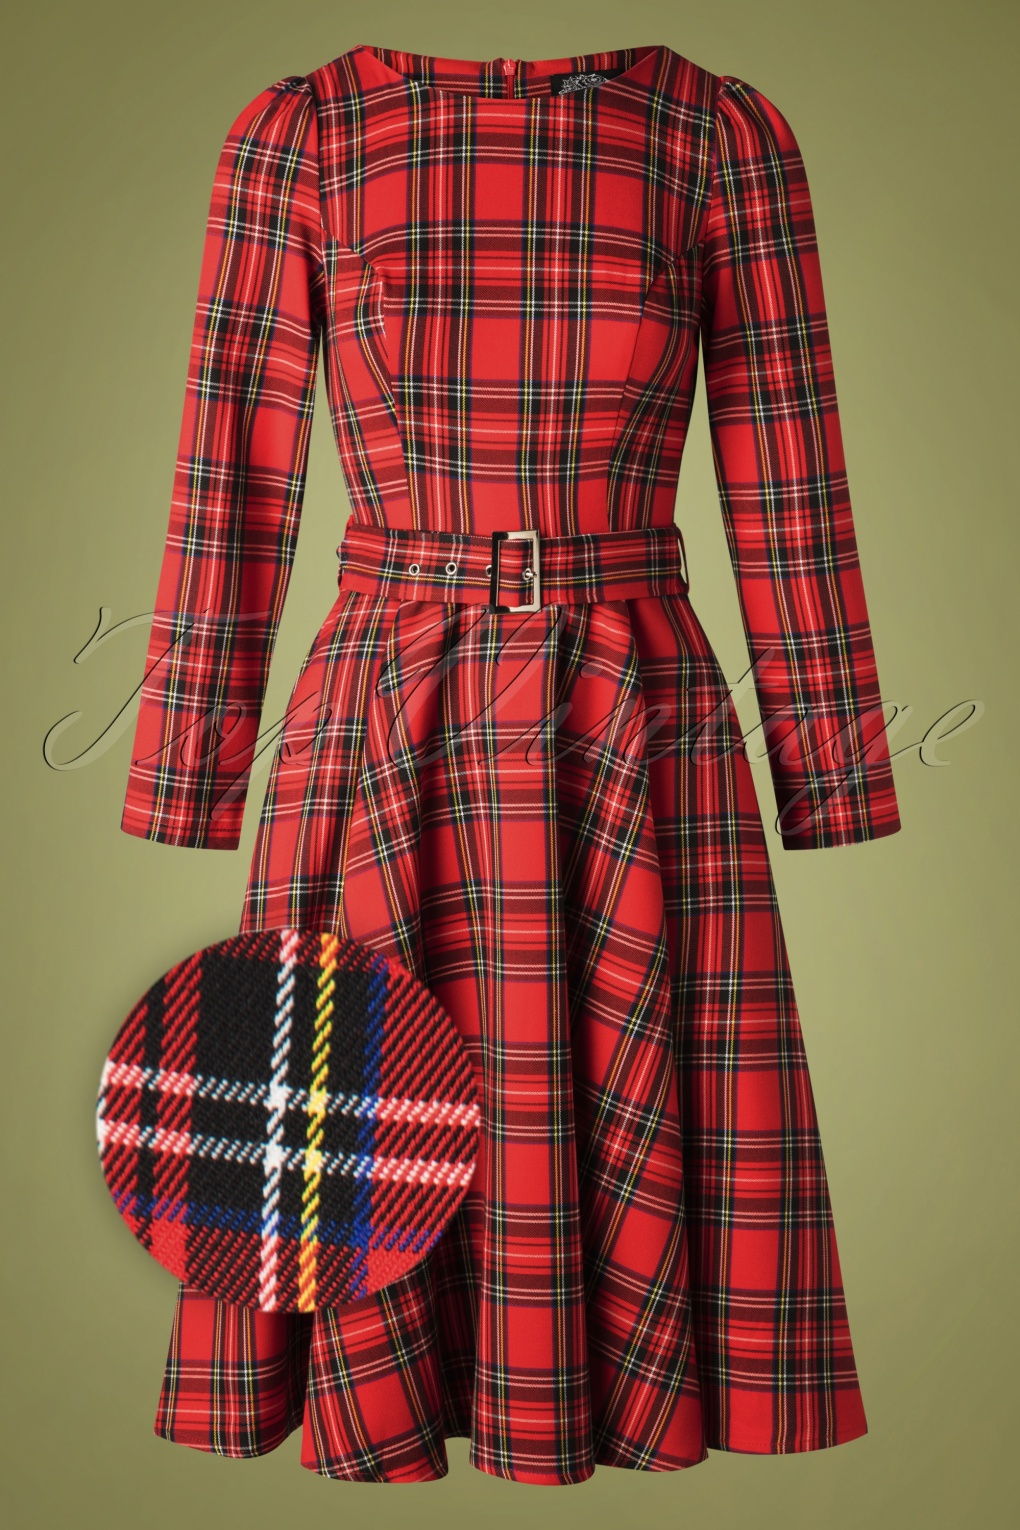 Fifties Dresses : 1950s Style Swing to Wiggle Dresses 50s Highland Swing Dress in Red Tartan £48.35 AT vintagedancer.com